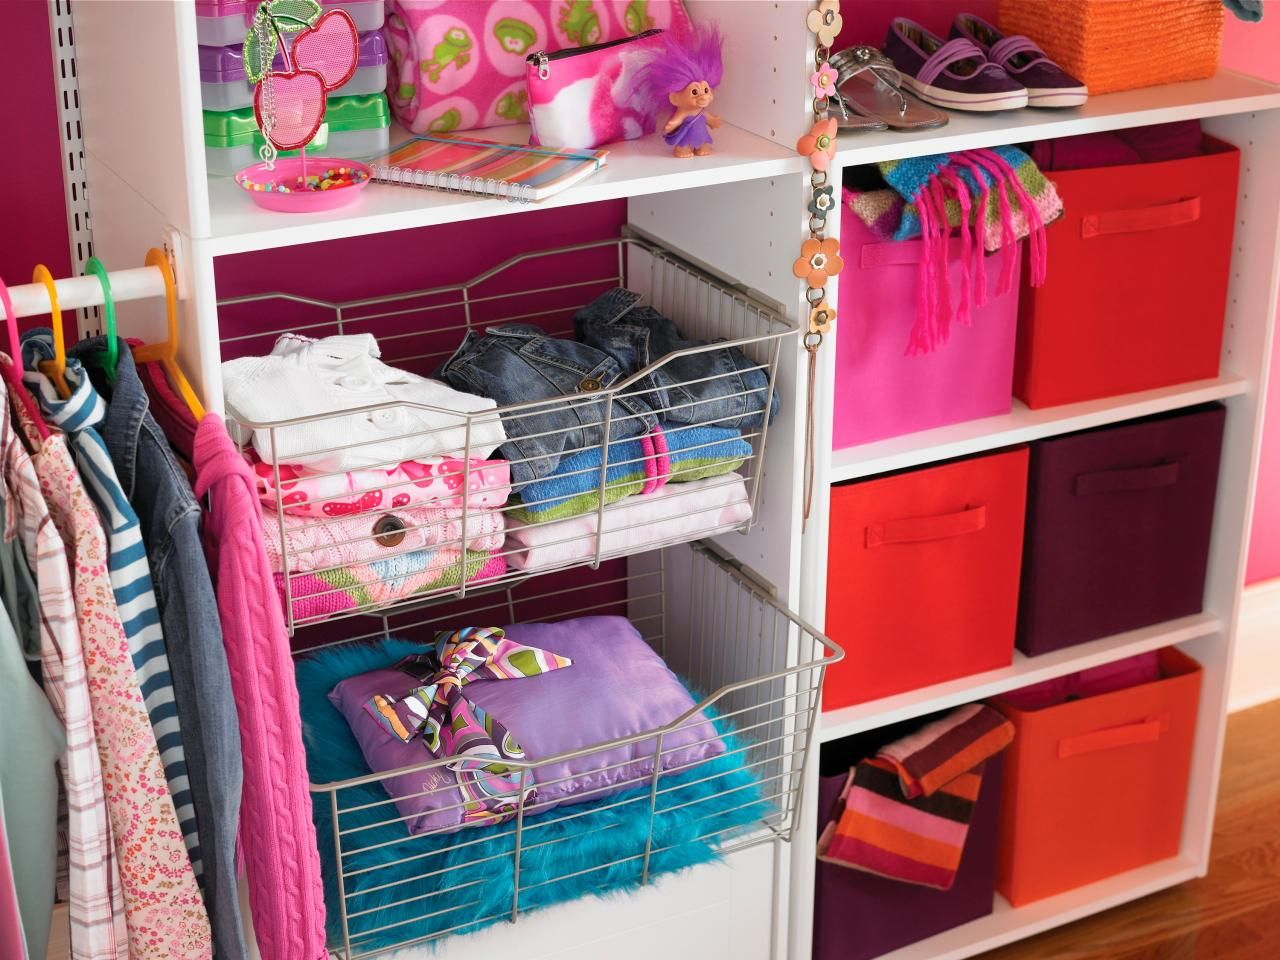 Small Closet Organization Ideas: Pictures, Options U0026 Tips